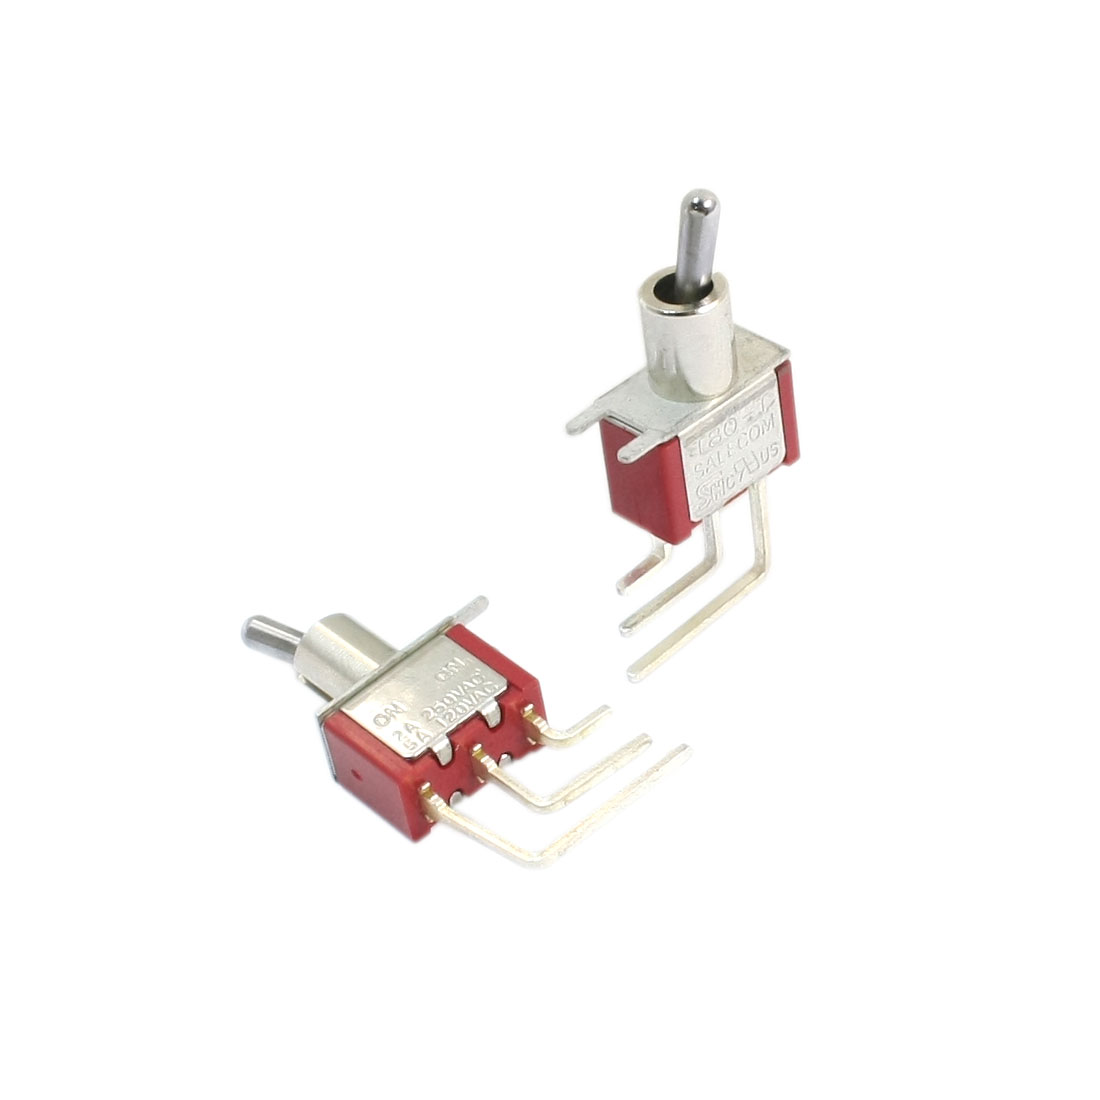 2pcs 2 Position 3 Bent Pins SPDT ON/ON Toggle Switch AC250V 2A 120V 5A